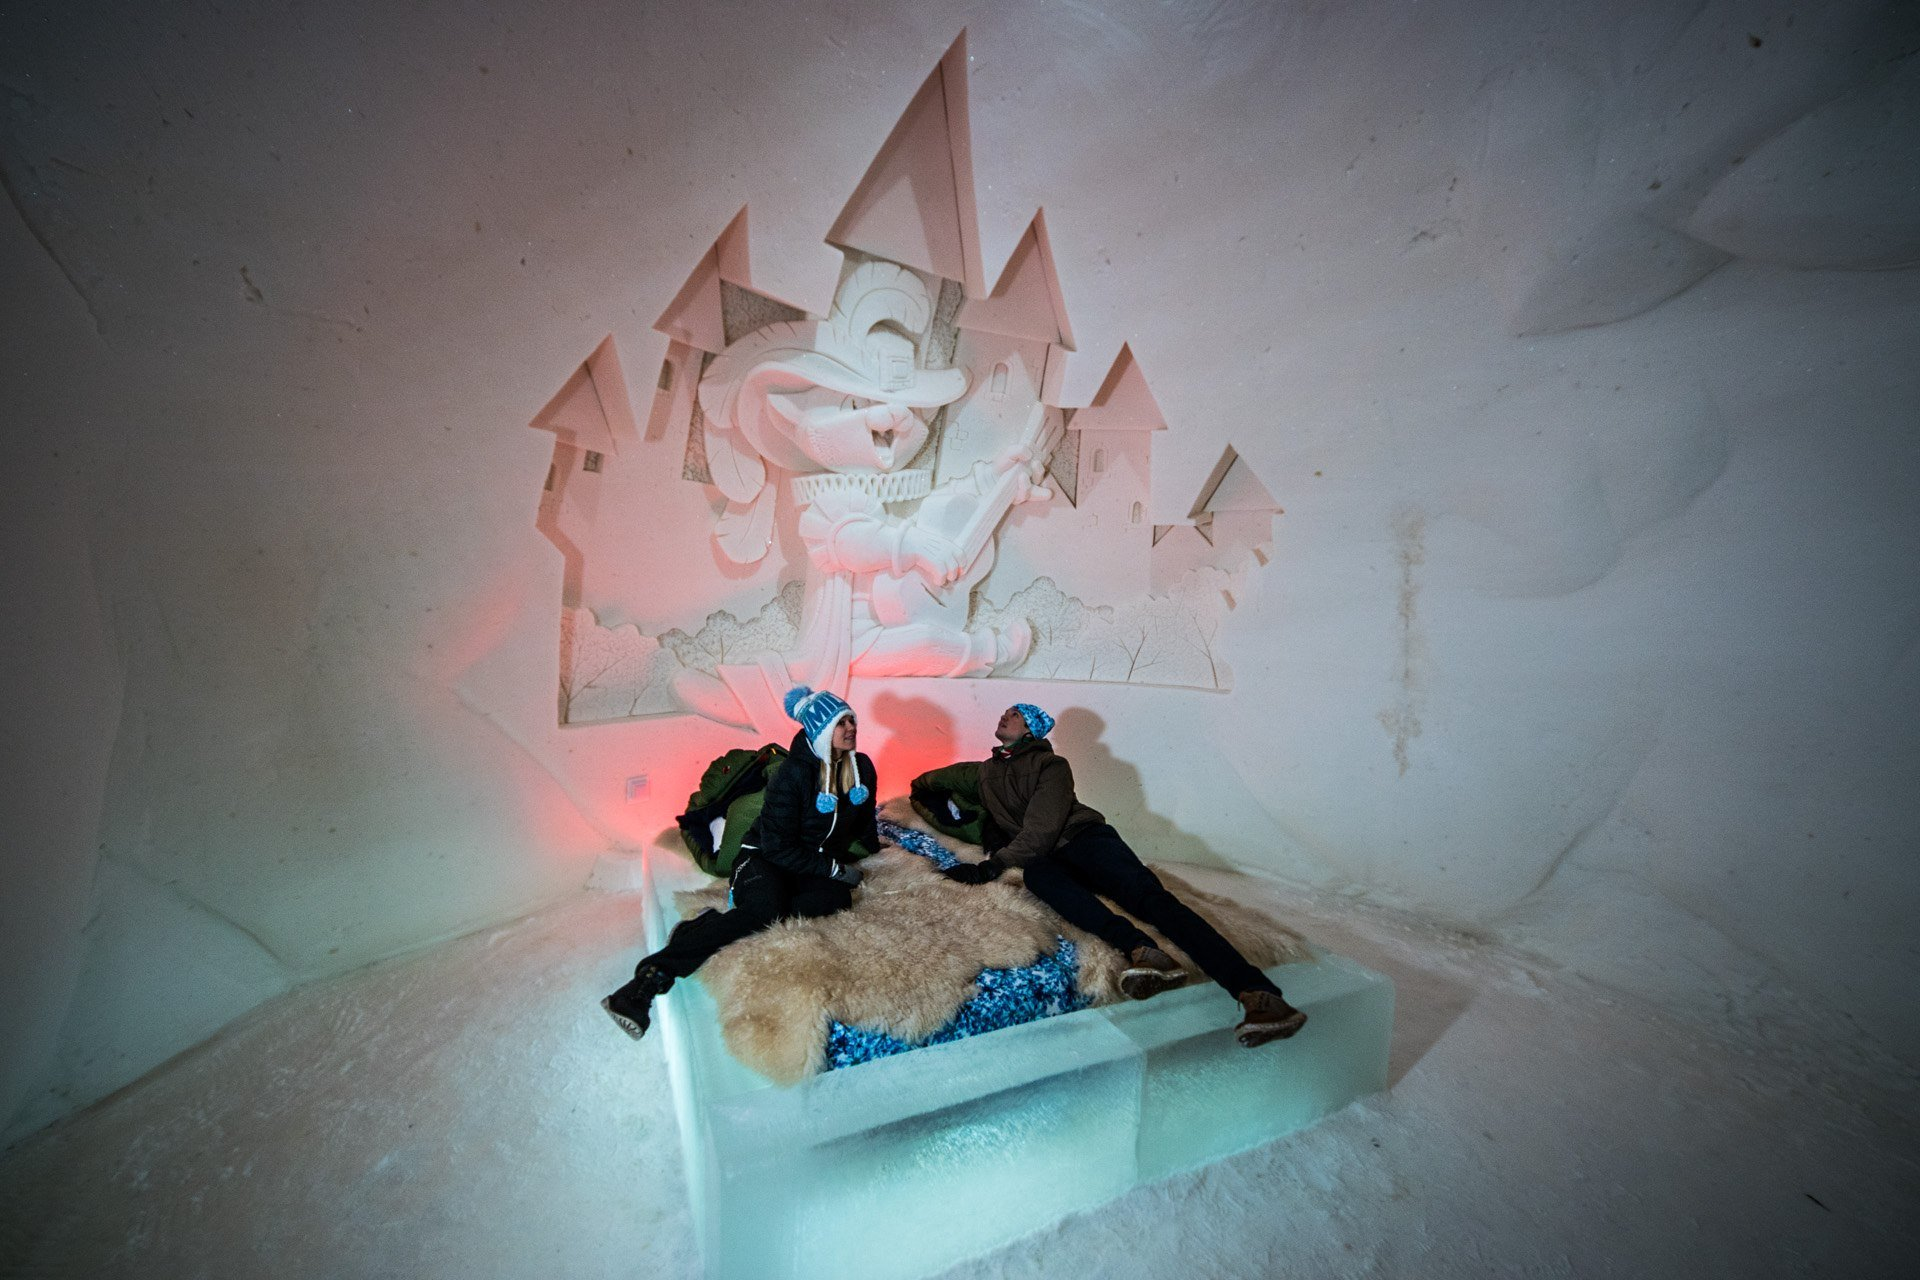 People sitting on a bed in an ice suite